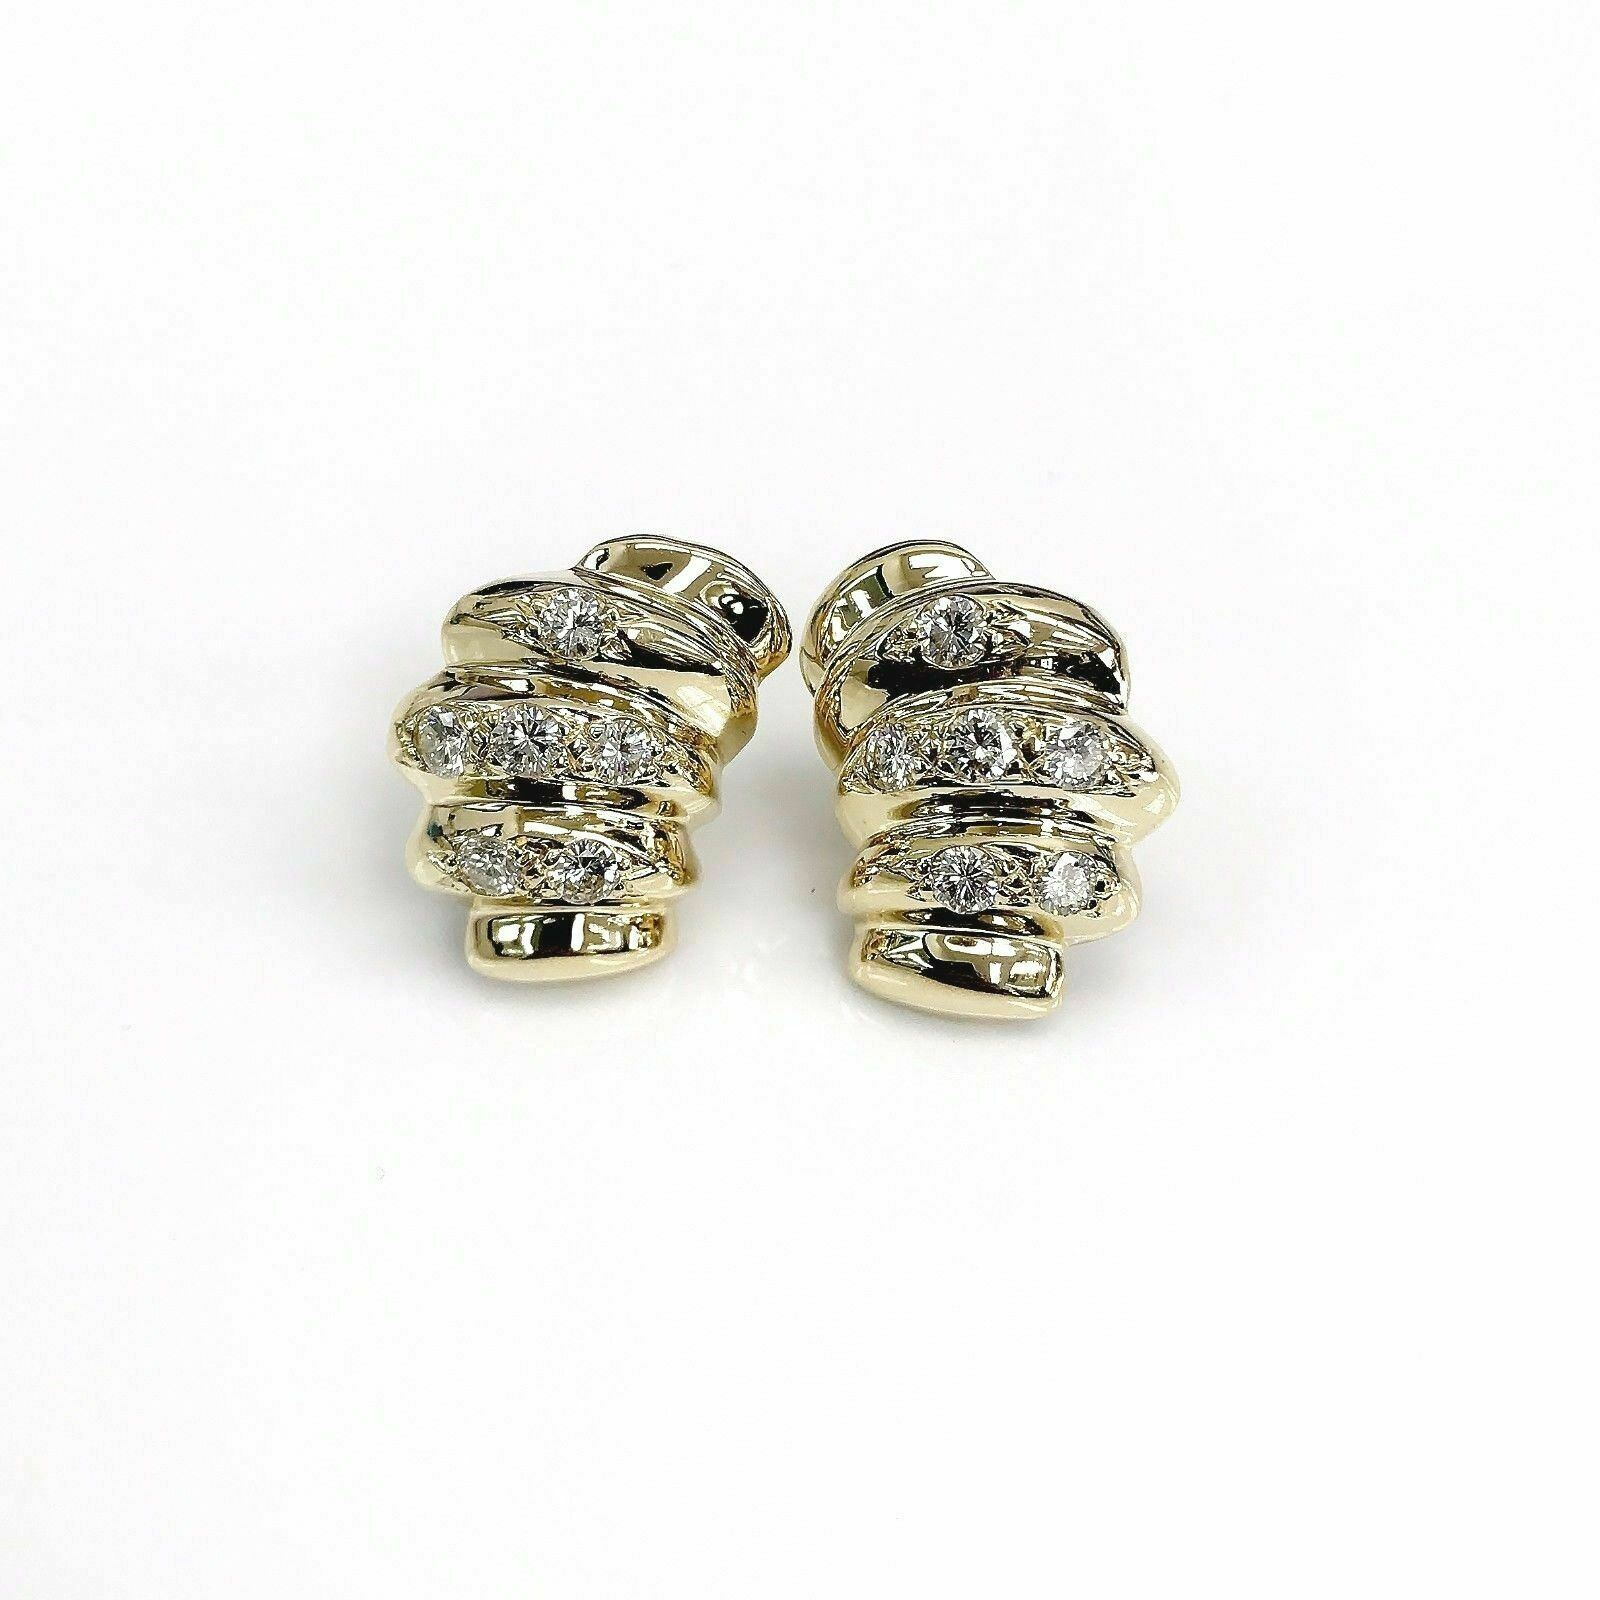 1.80 Carats Diamond French Clip Earrings 14K Yellow Gold 1.00 x 0.75 Inch